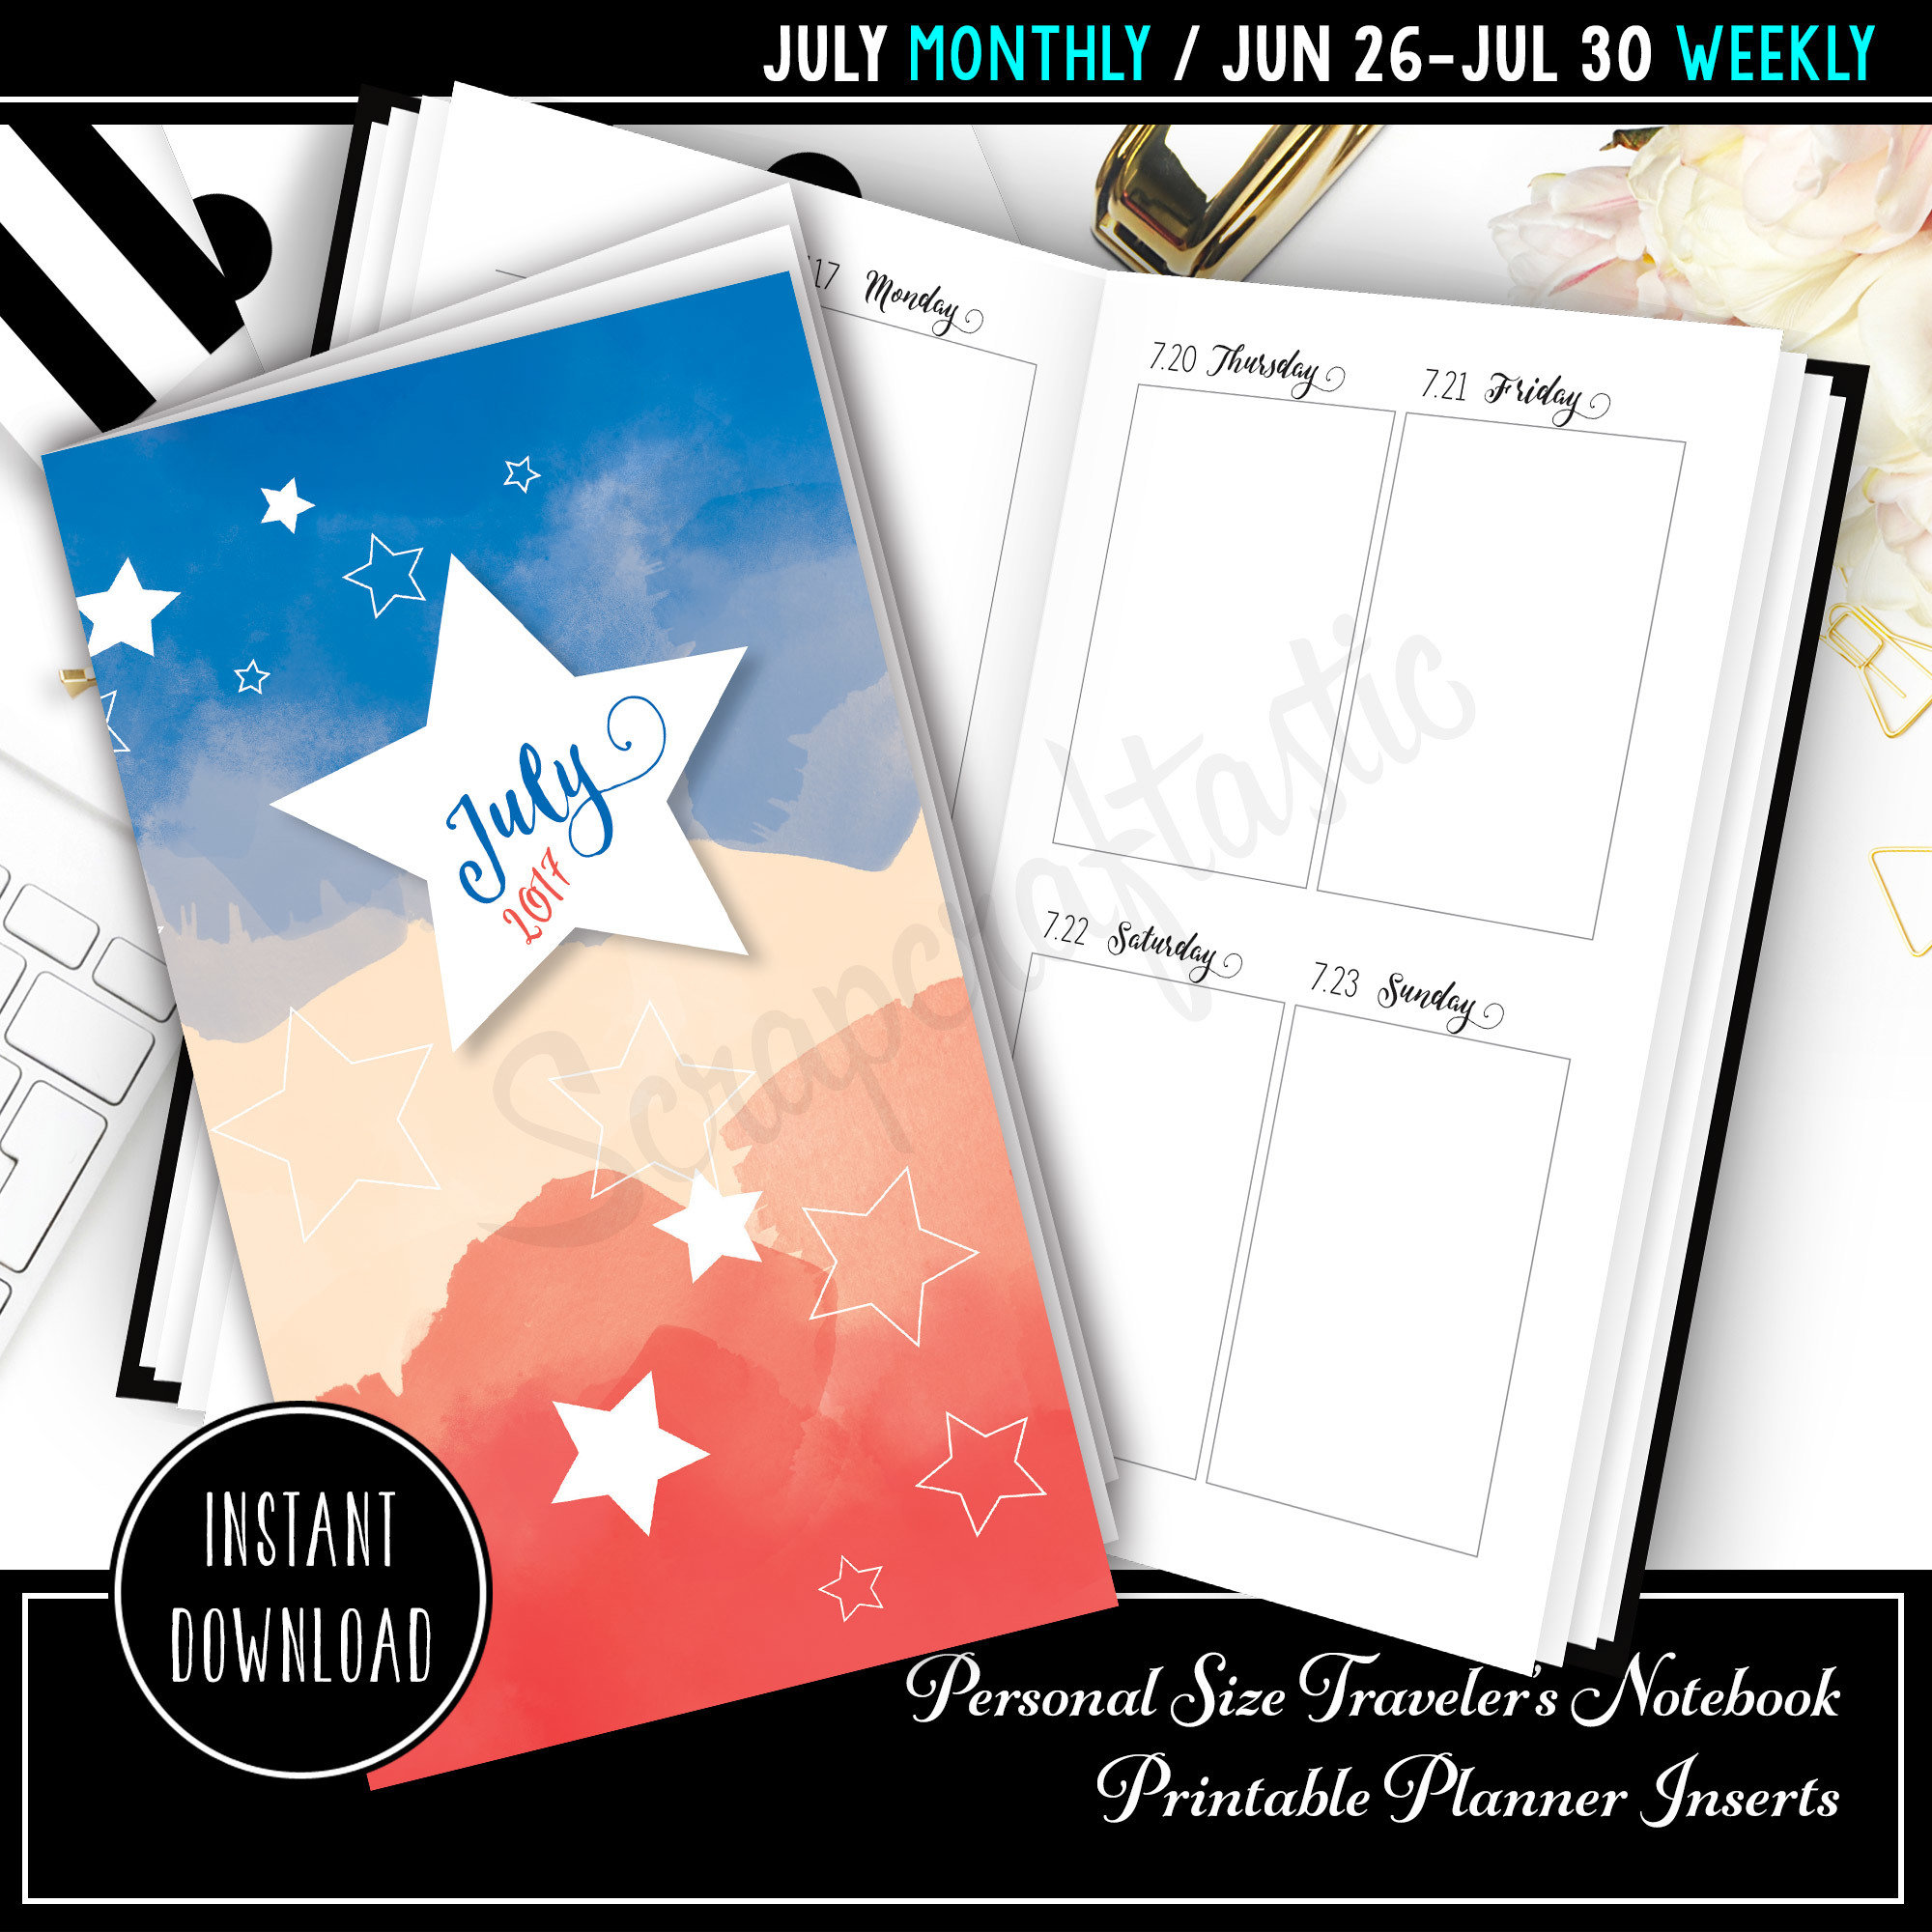 July 2017 Personal Size Traveler's Notebook Printable Planner Inserts 09009